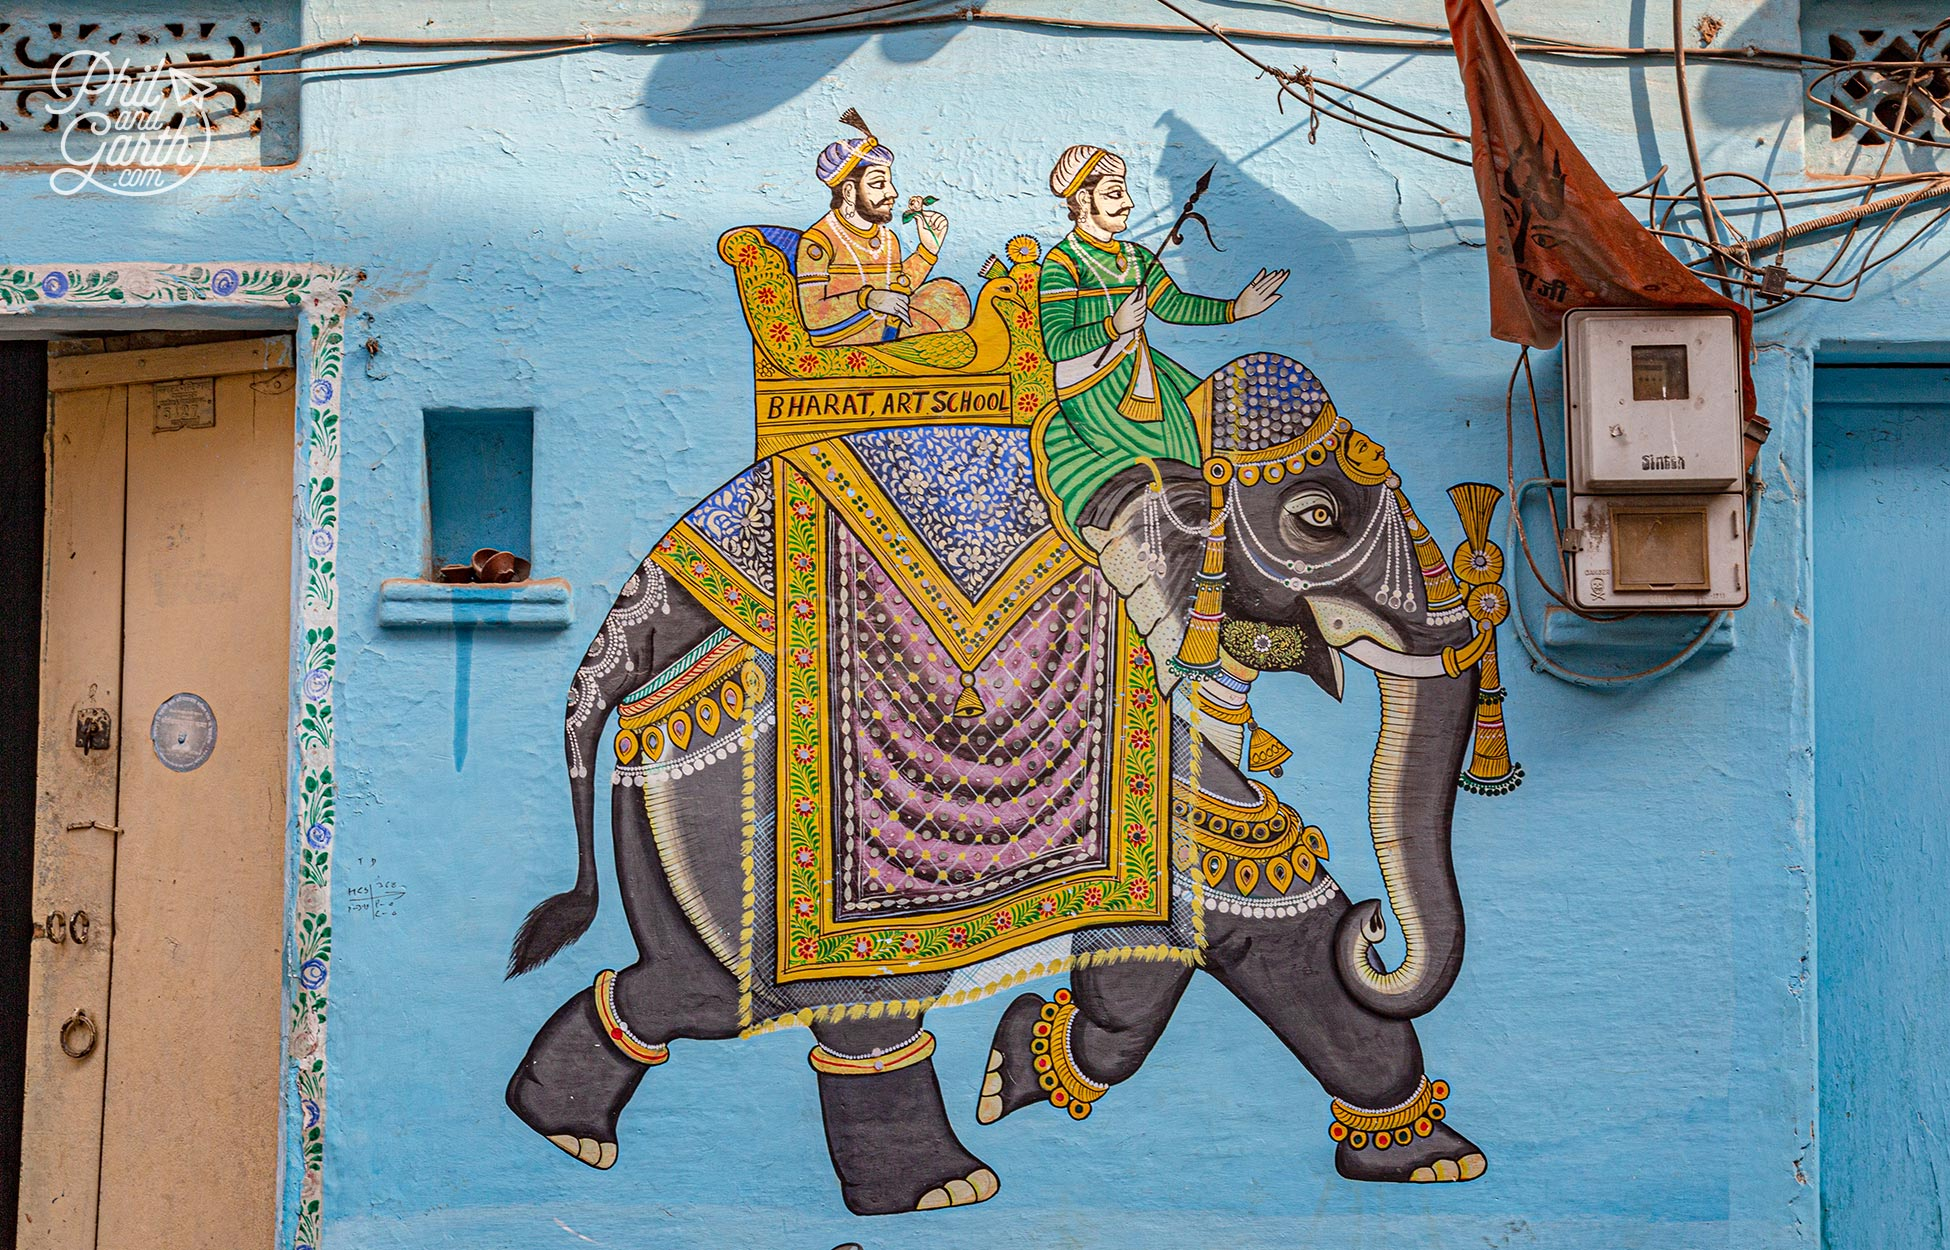 Some beautiful murals can be found on walls around Udaipur